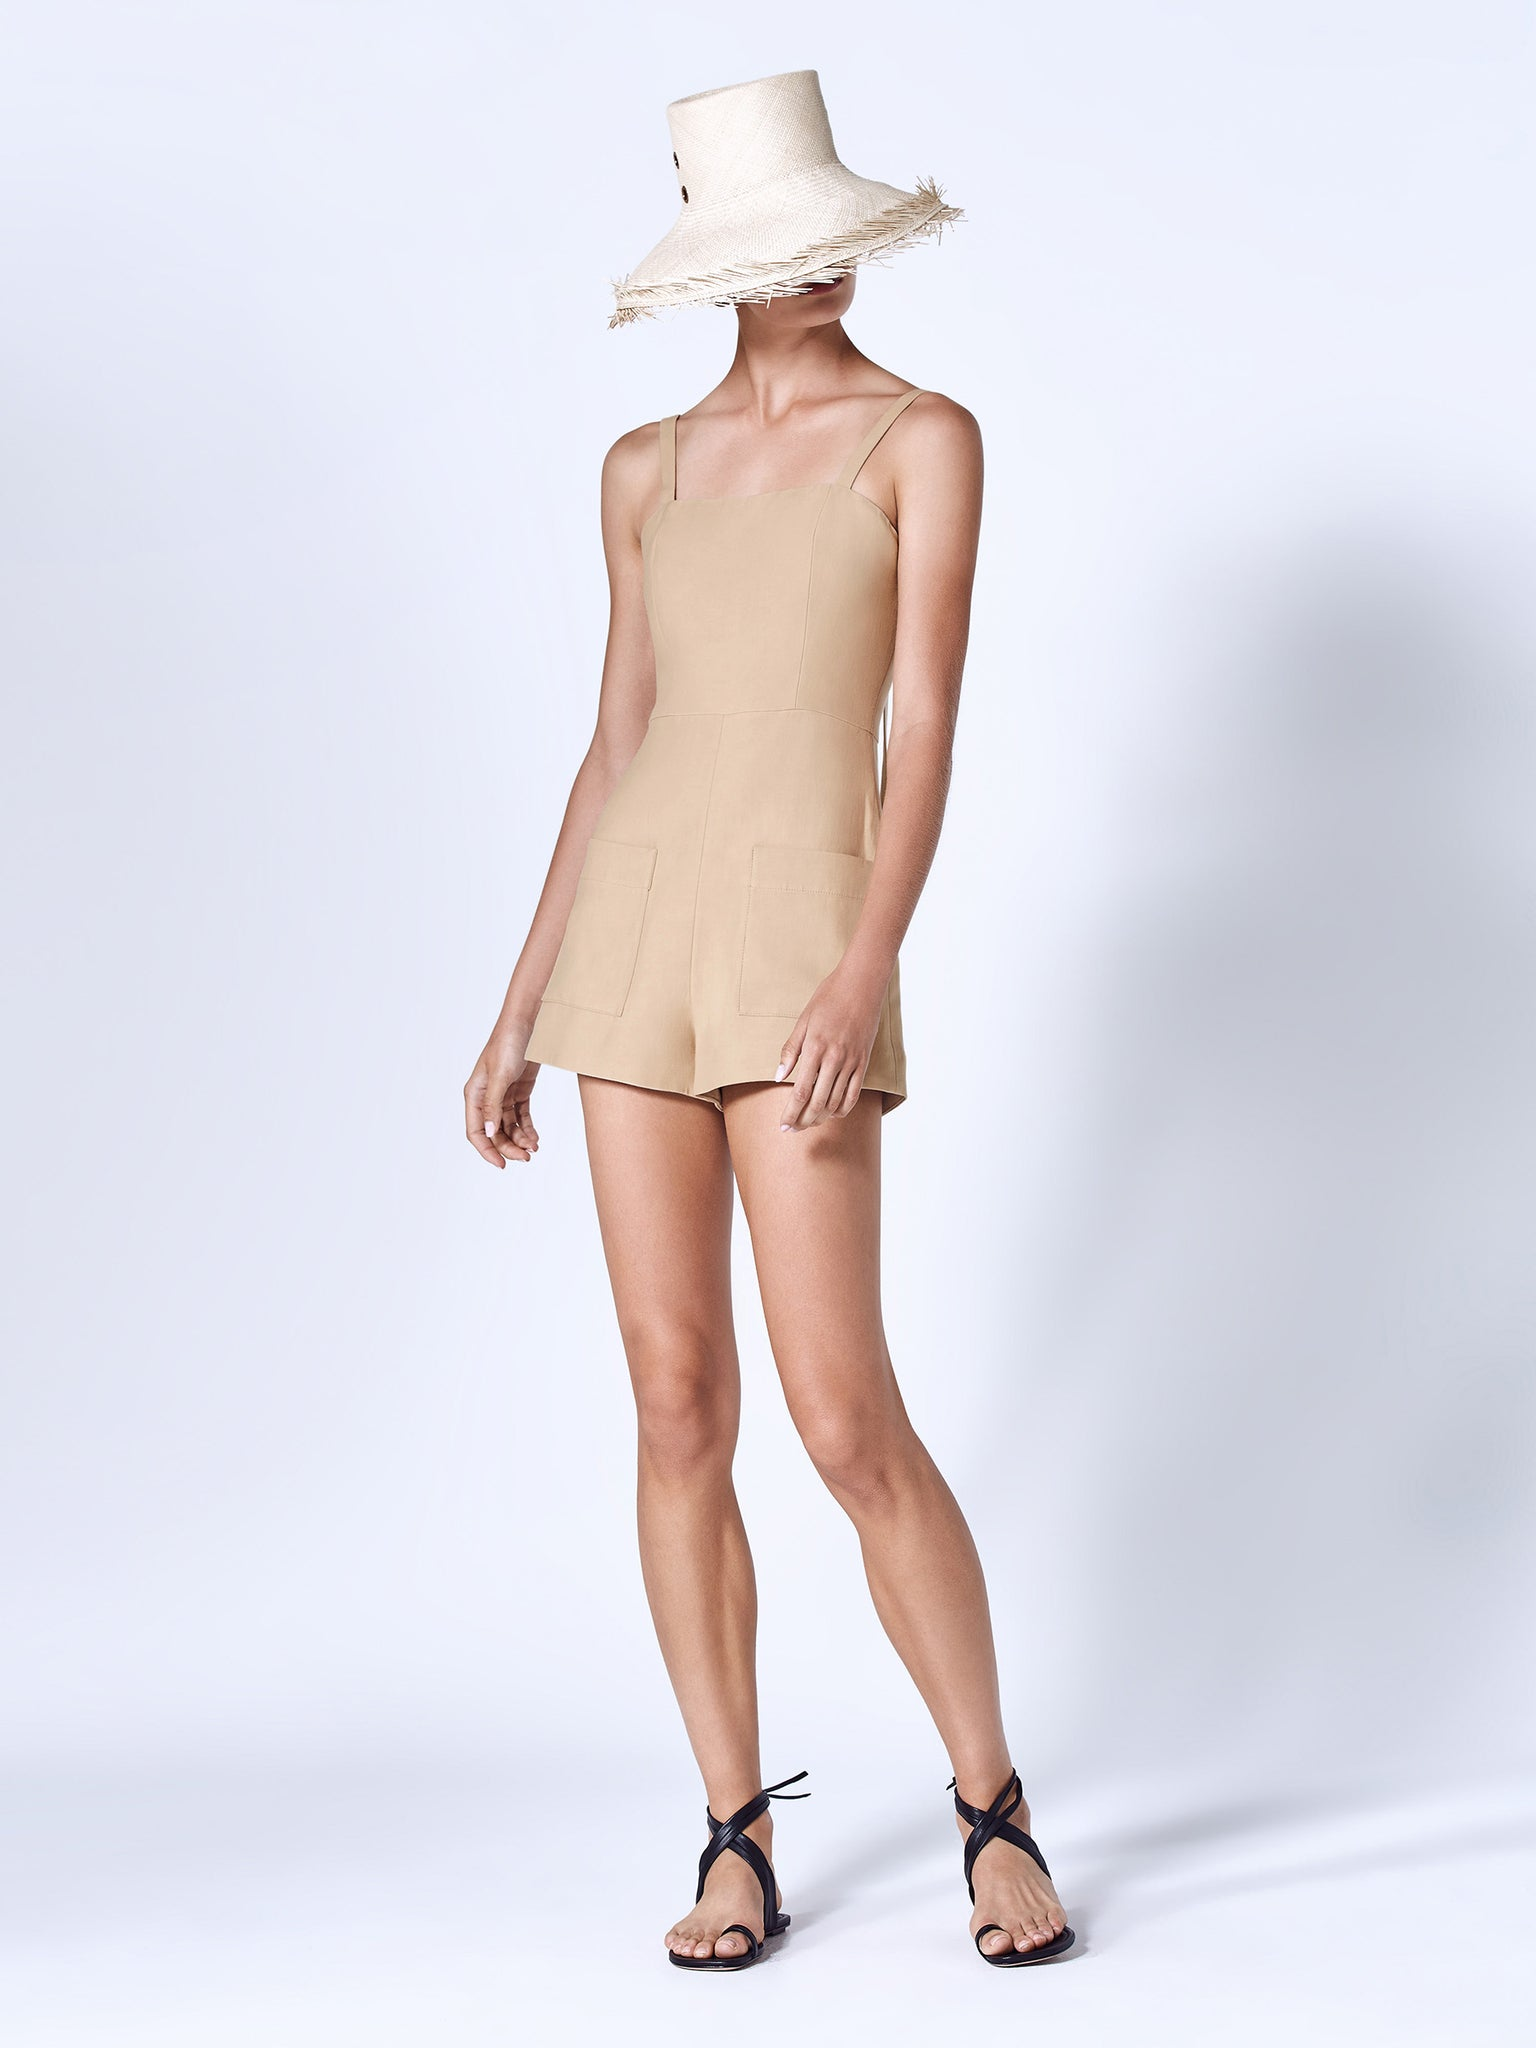 Alexis Arlington romper in beige featuring square neckline and two front pockets